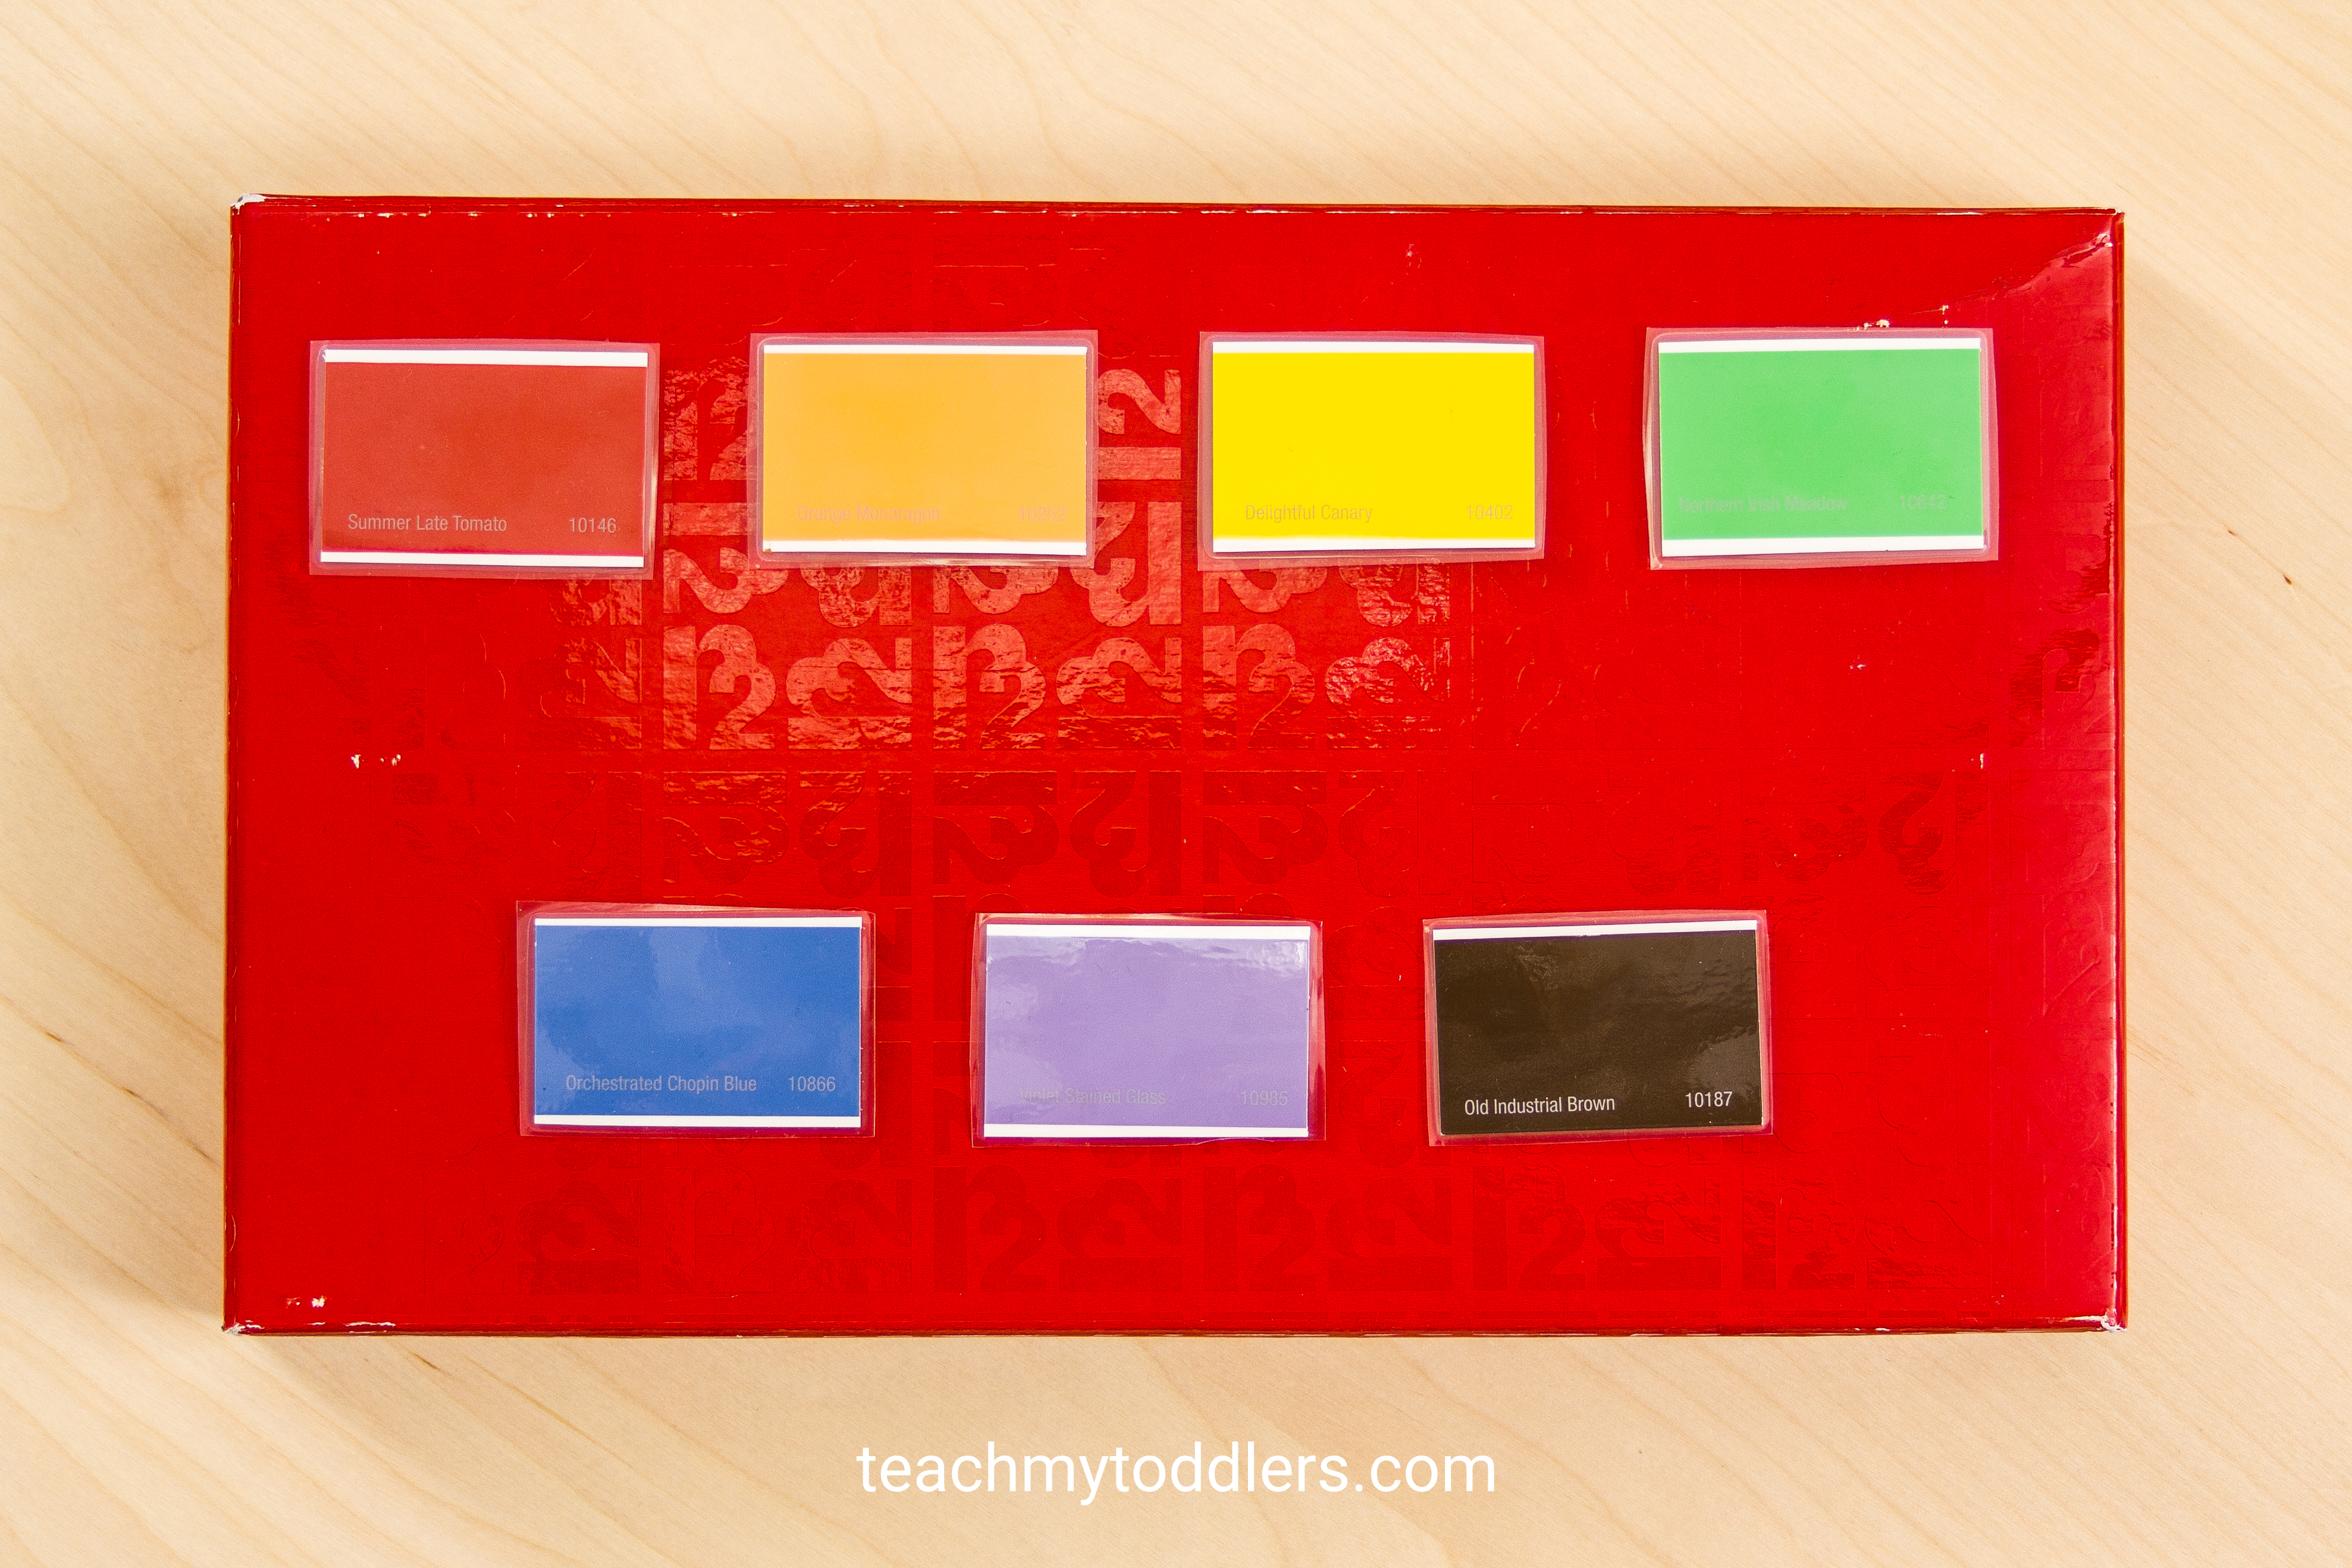 Teach your toddlers colors with this fun activity using paint chips